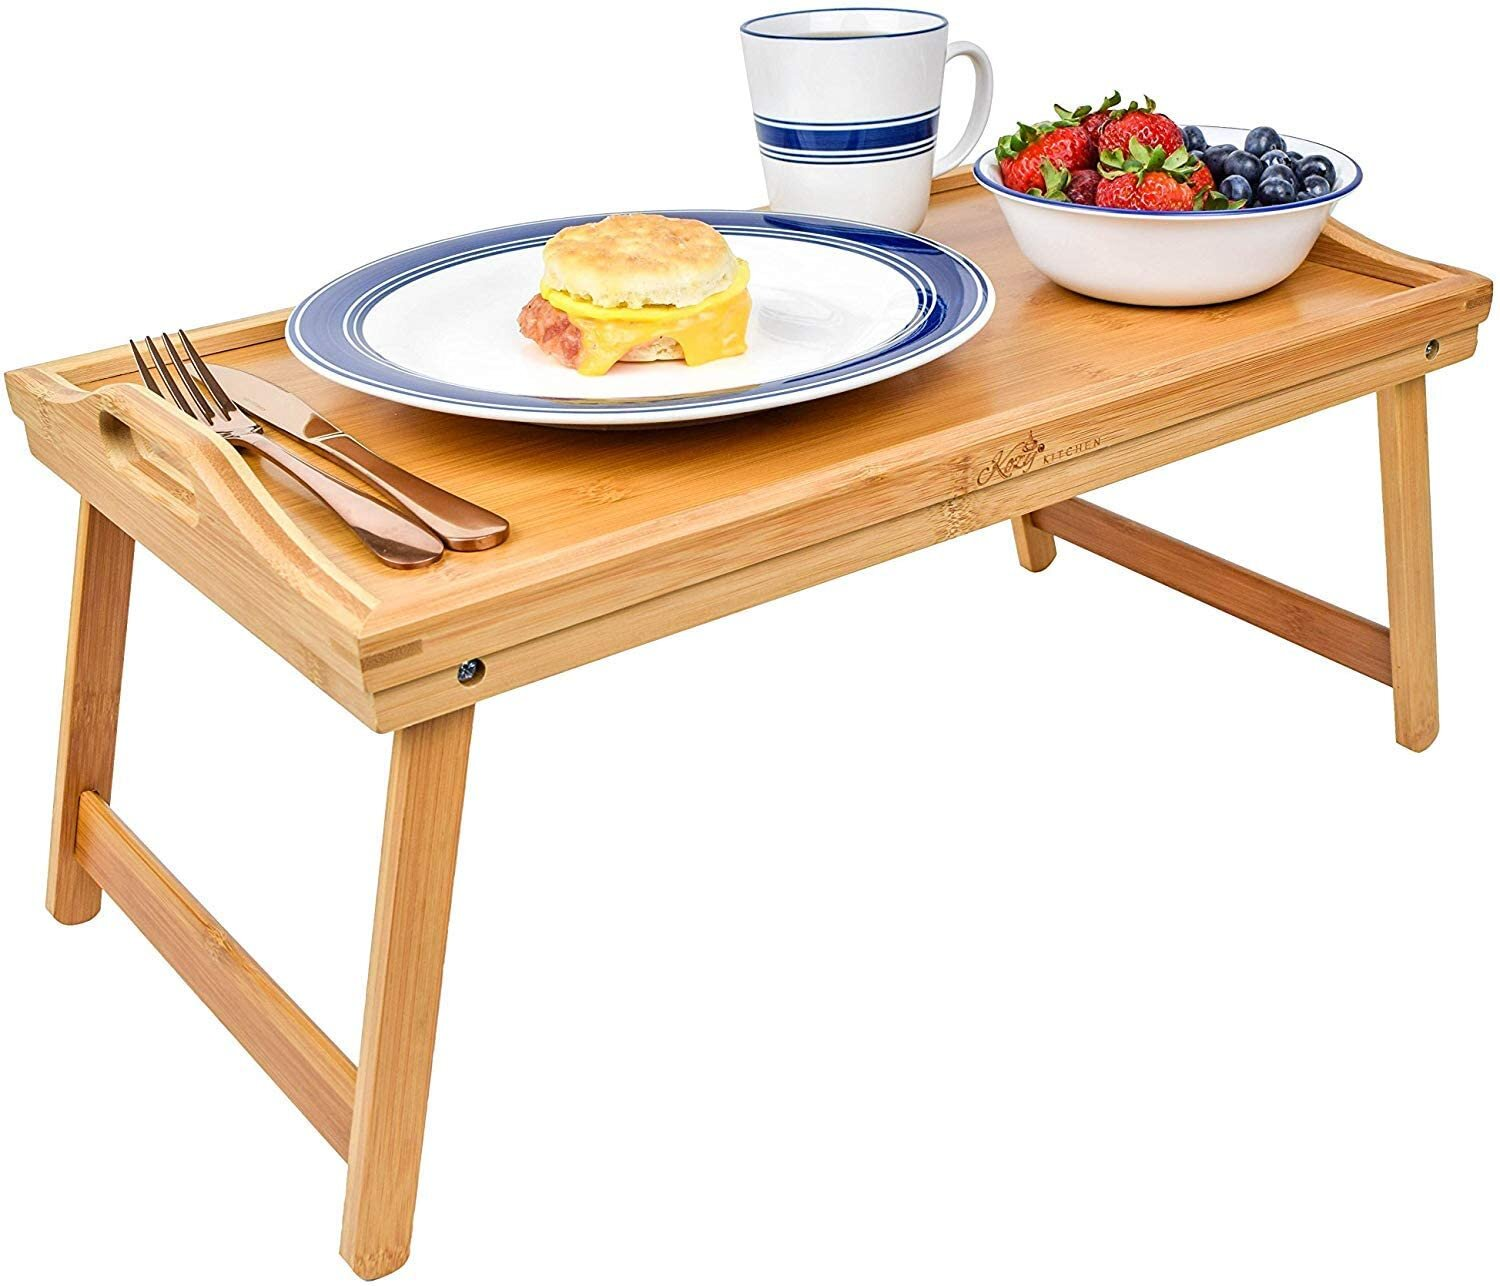 Bamboo Wood Wooden Breakfast Tea Serving Lap Tray Bed Table With Handles New